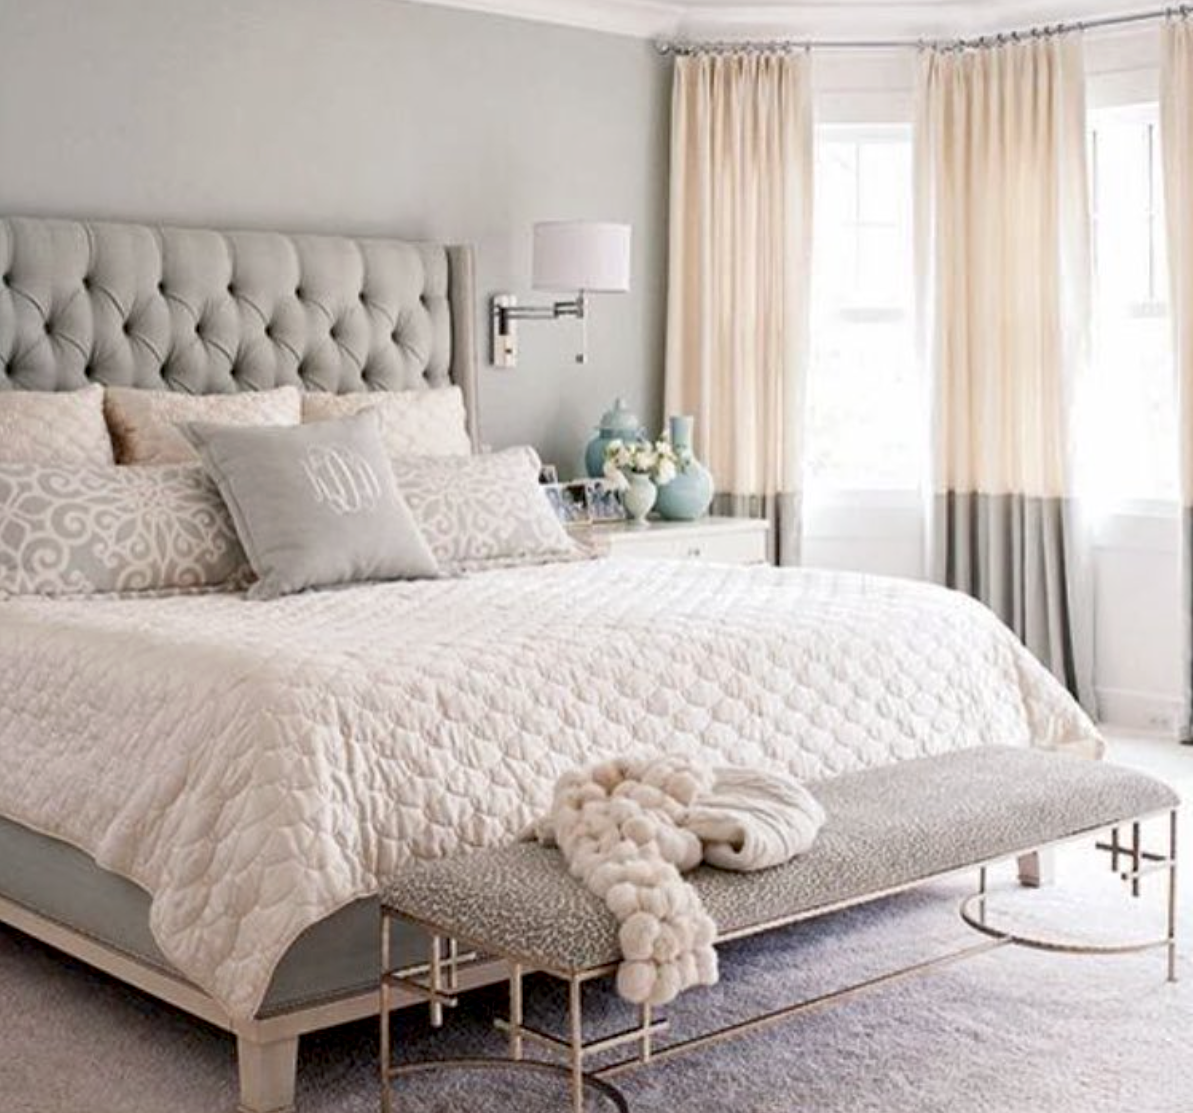 Superieur Bedroom Decor Ideas   Transitional Style, Light Grey, Cream And White Color  Palette. Tufted Headboard, Bench, Drum Wall Sconces Above Side Tables And  Full ...